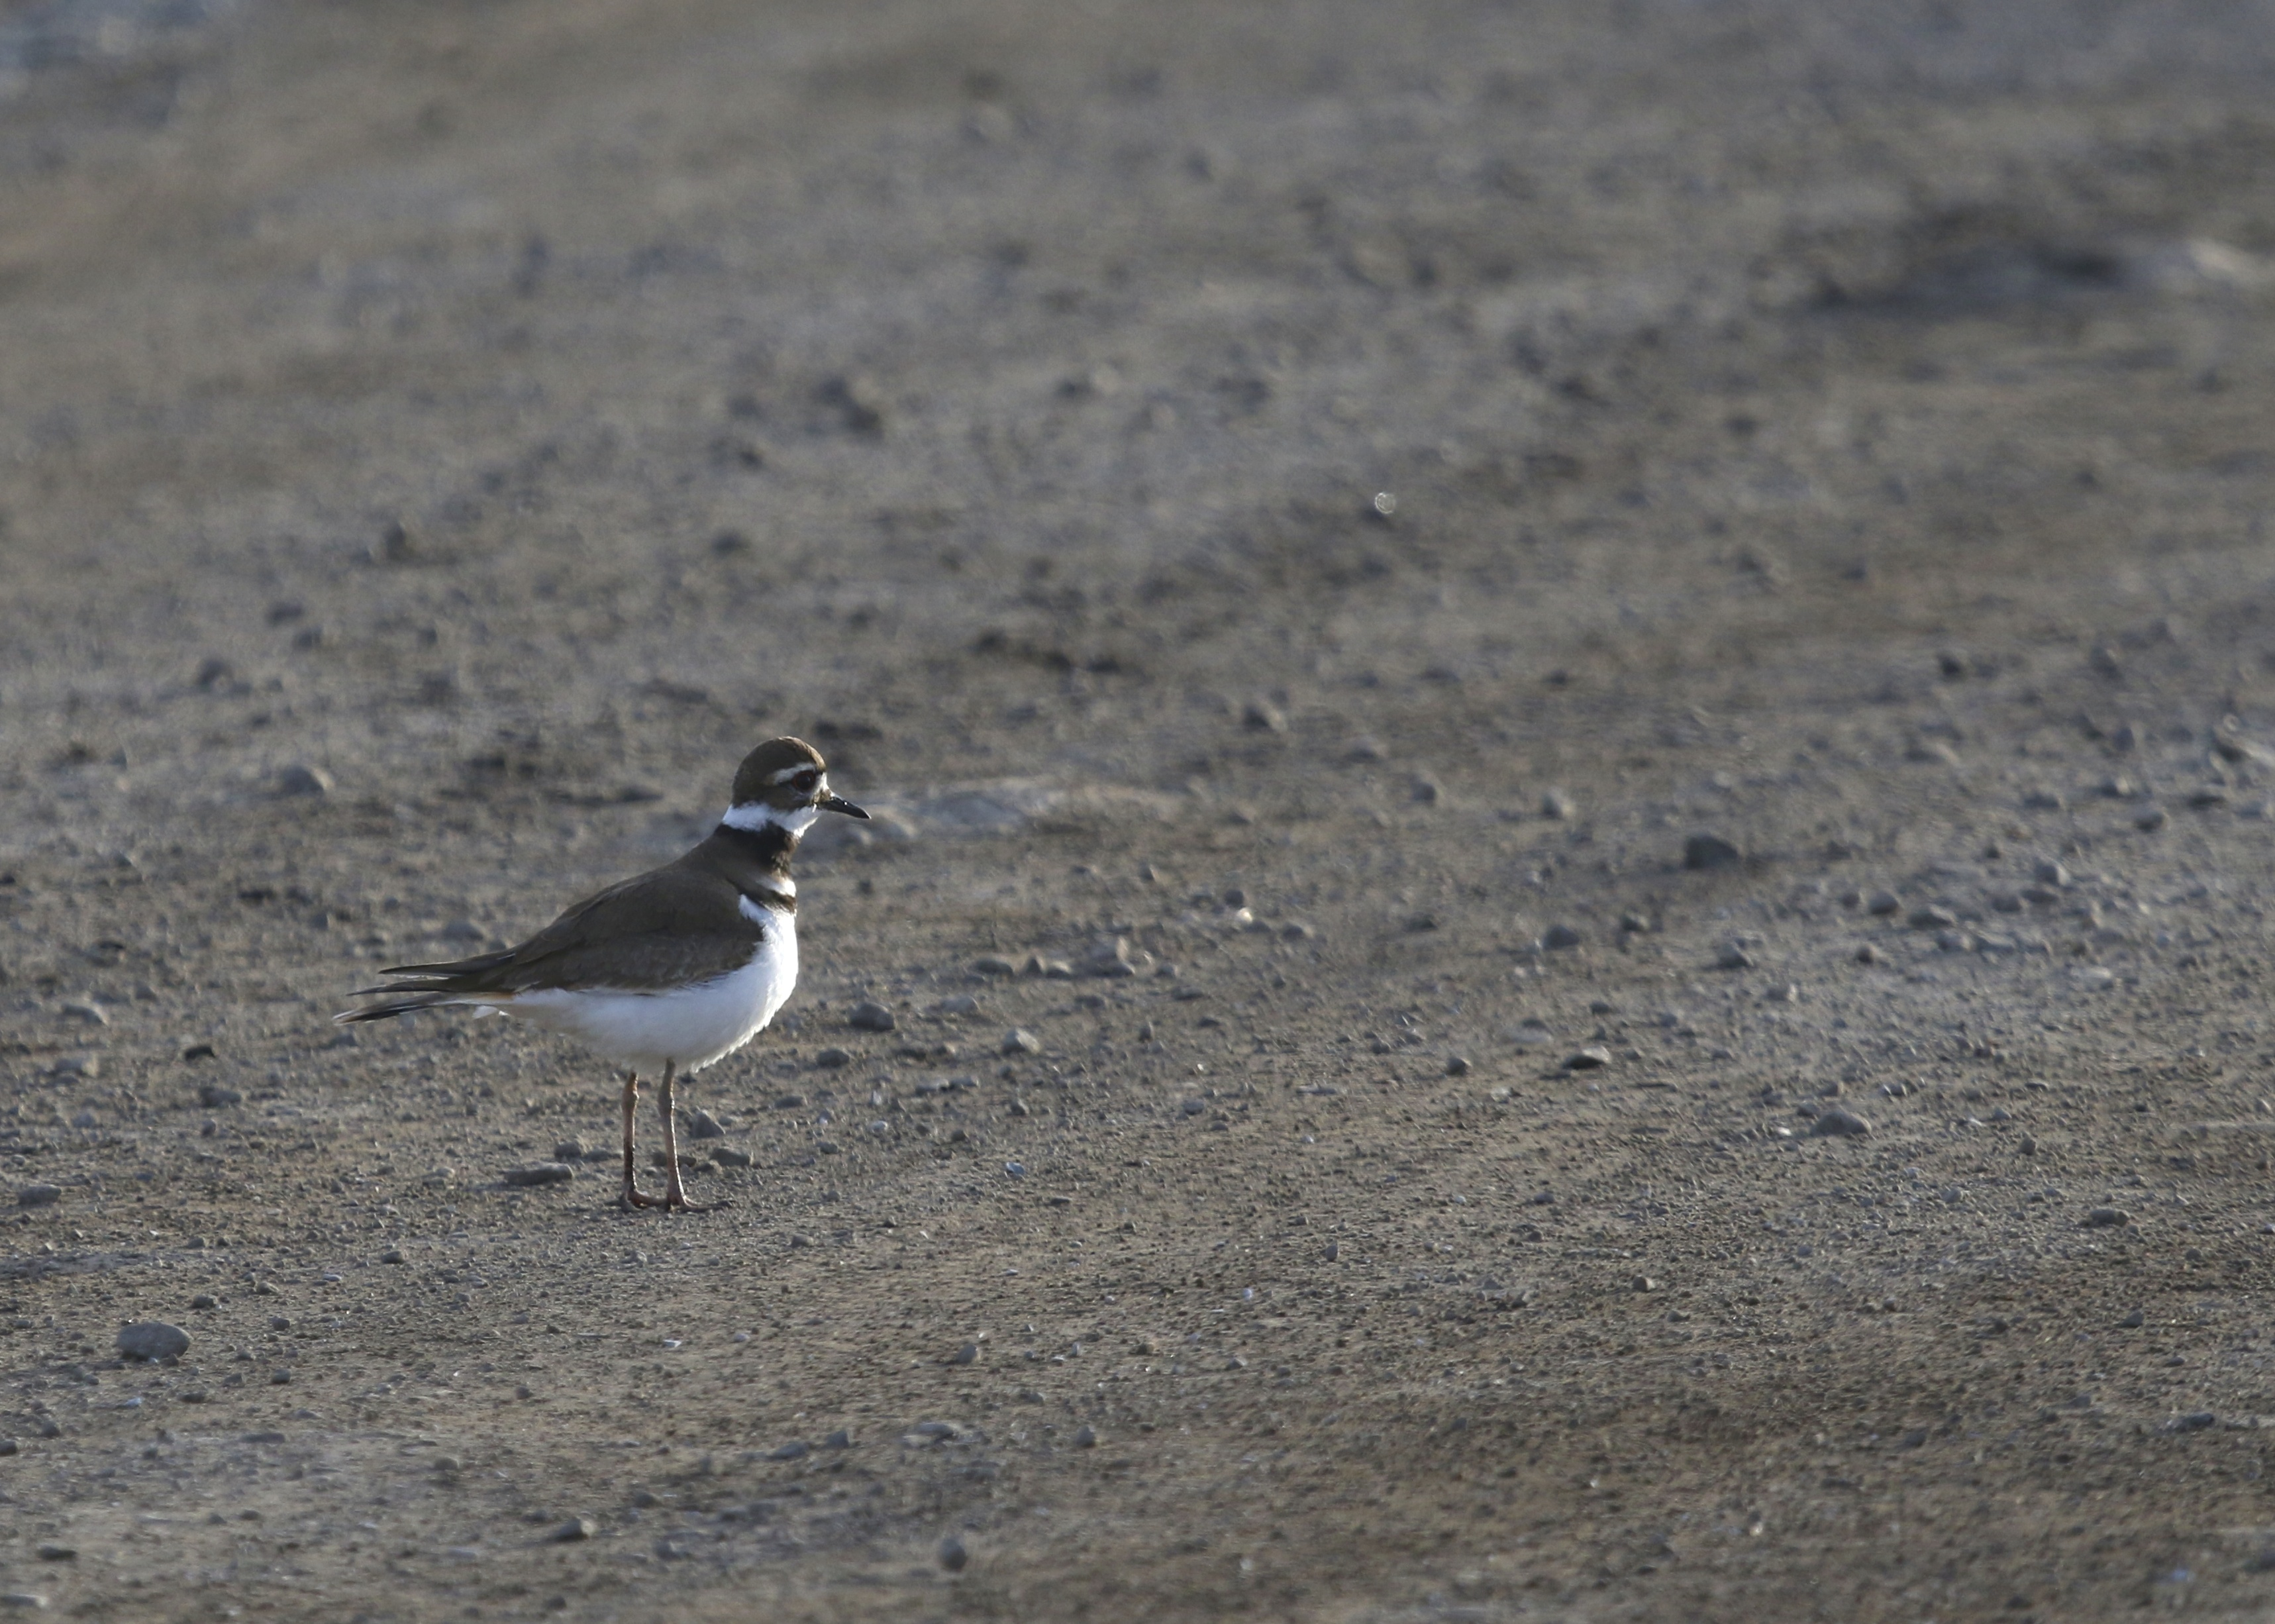 I had my first Orange County Killdeer of the year on this day - 3 in the Black Dirt and 4 at Lower Wisner Road in Warwick. 3/11/14.